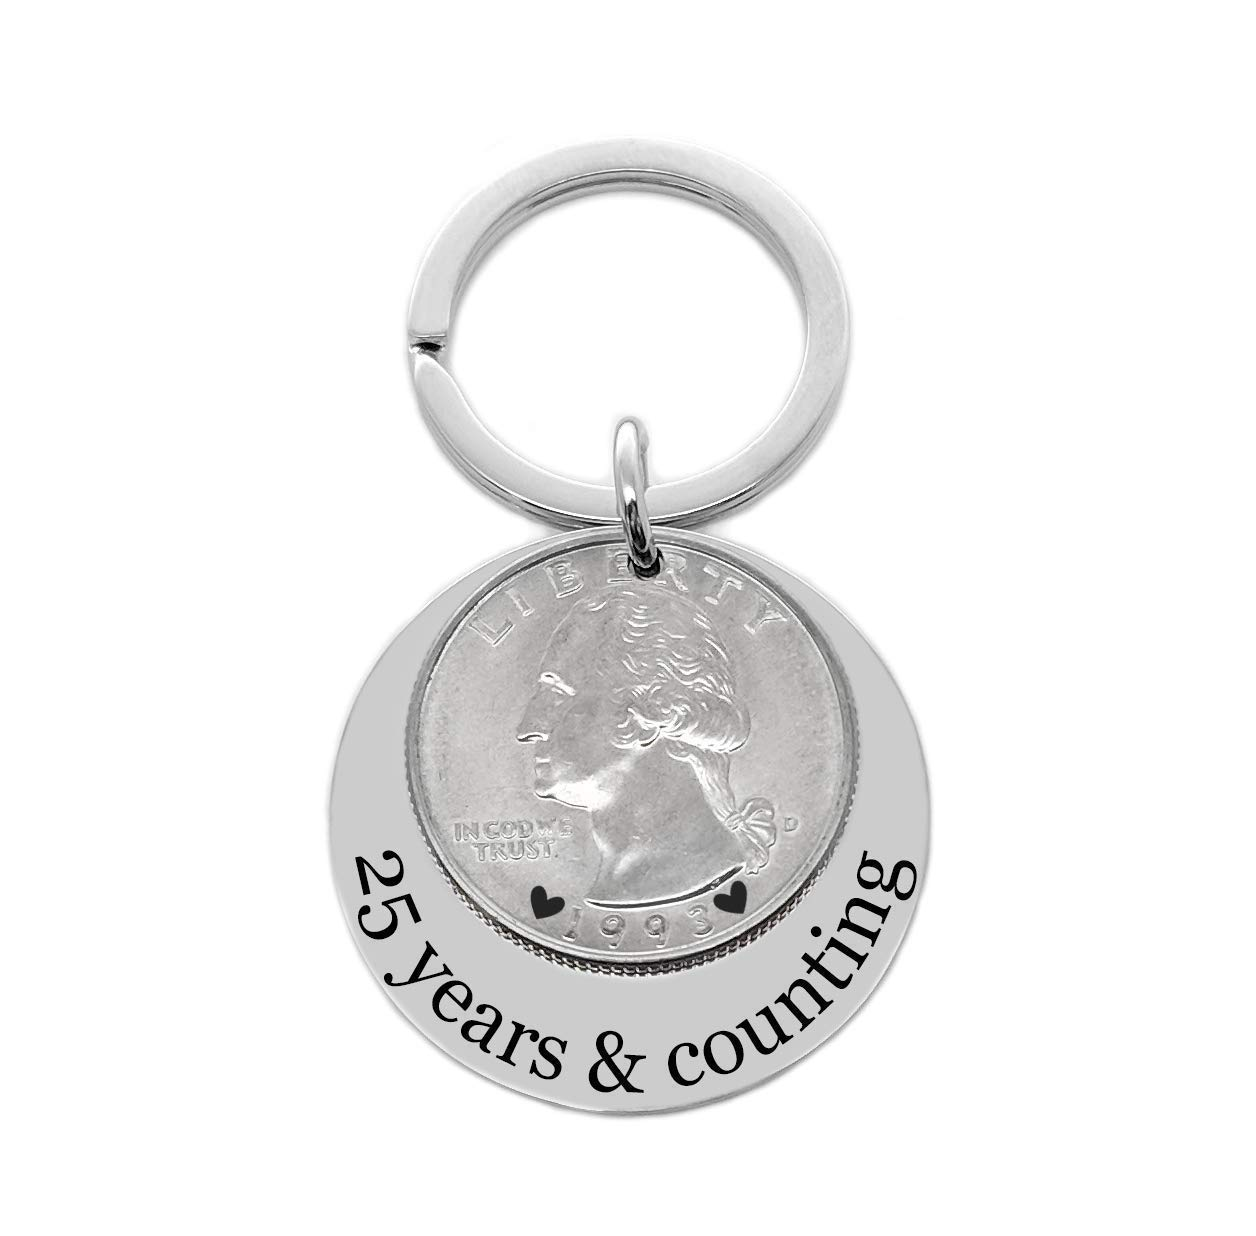 25 years and counting 25th anniversary gift 1994 silver quarter key chain